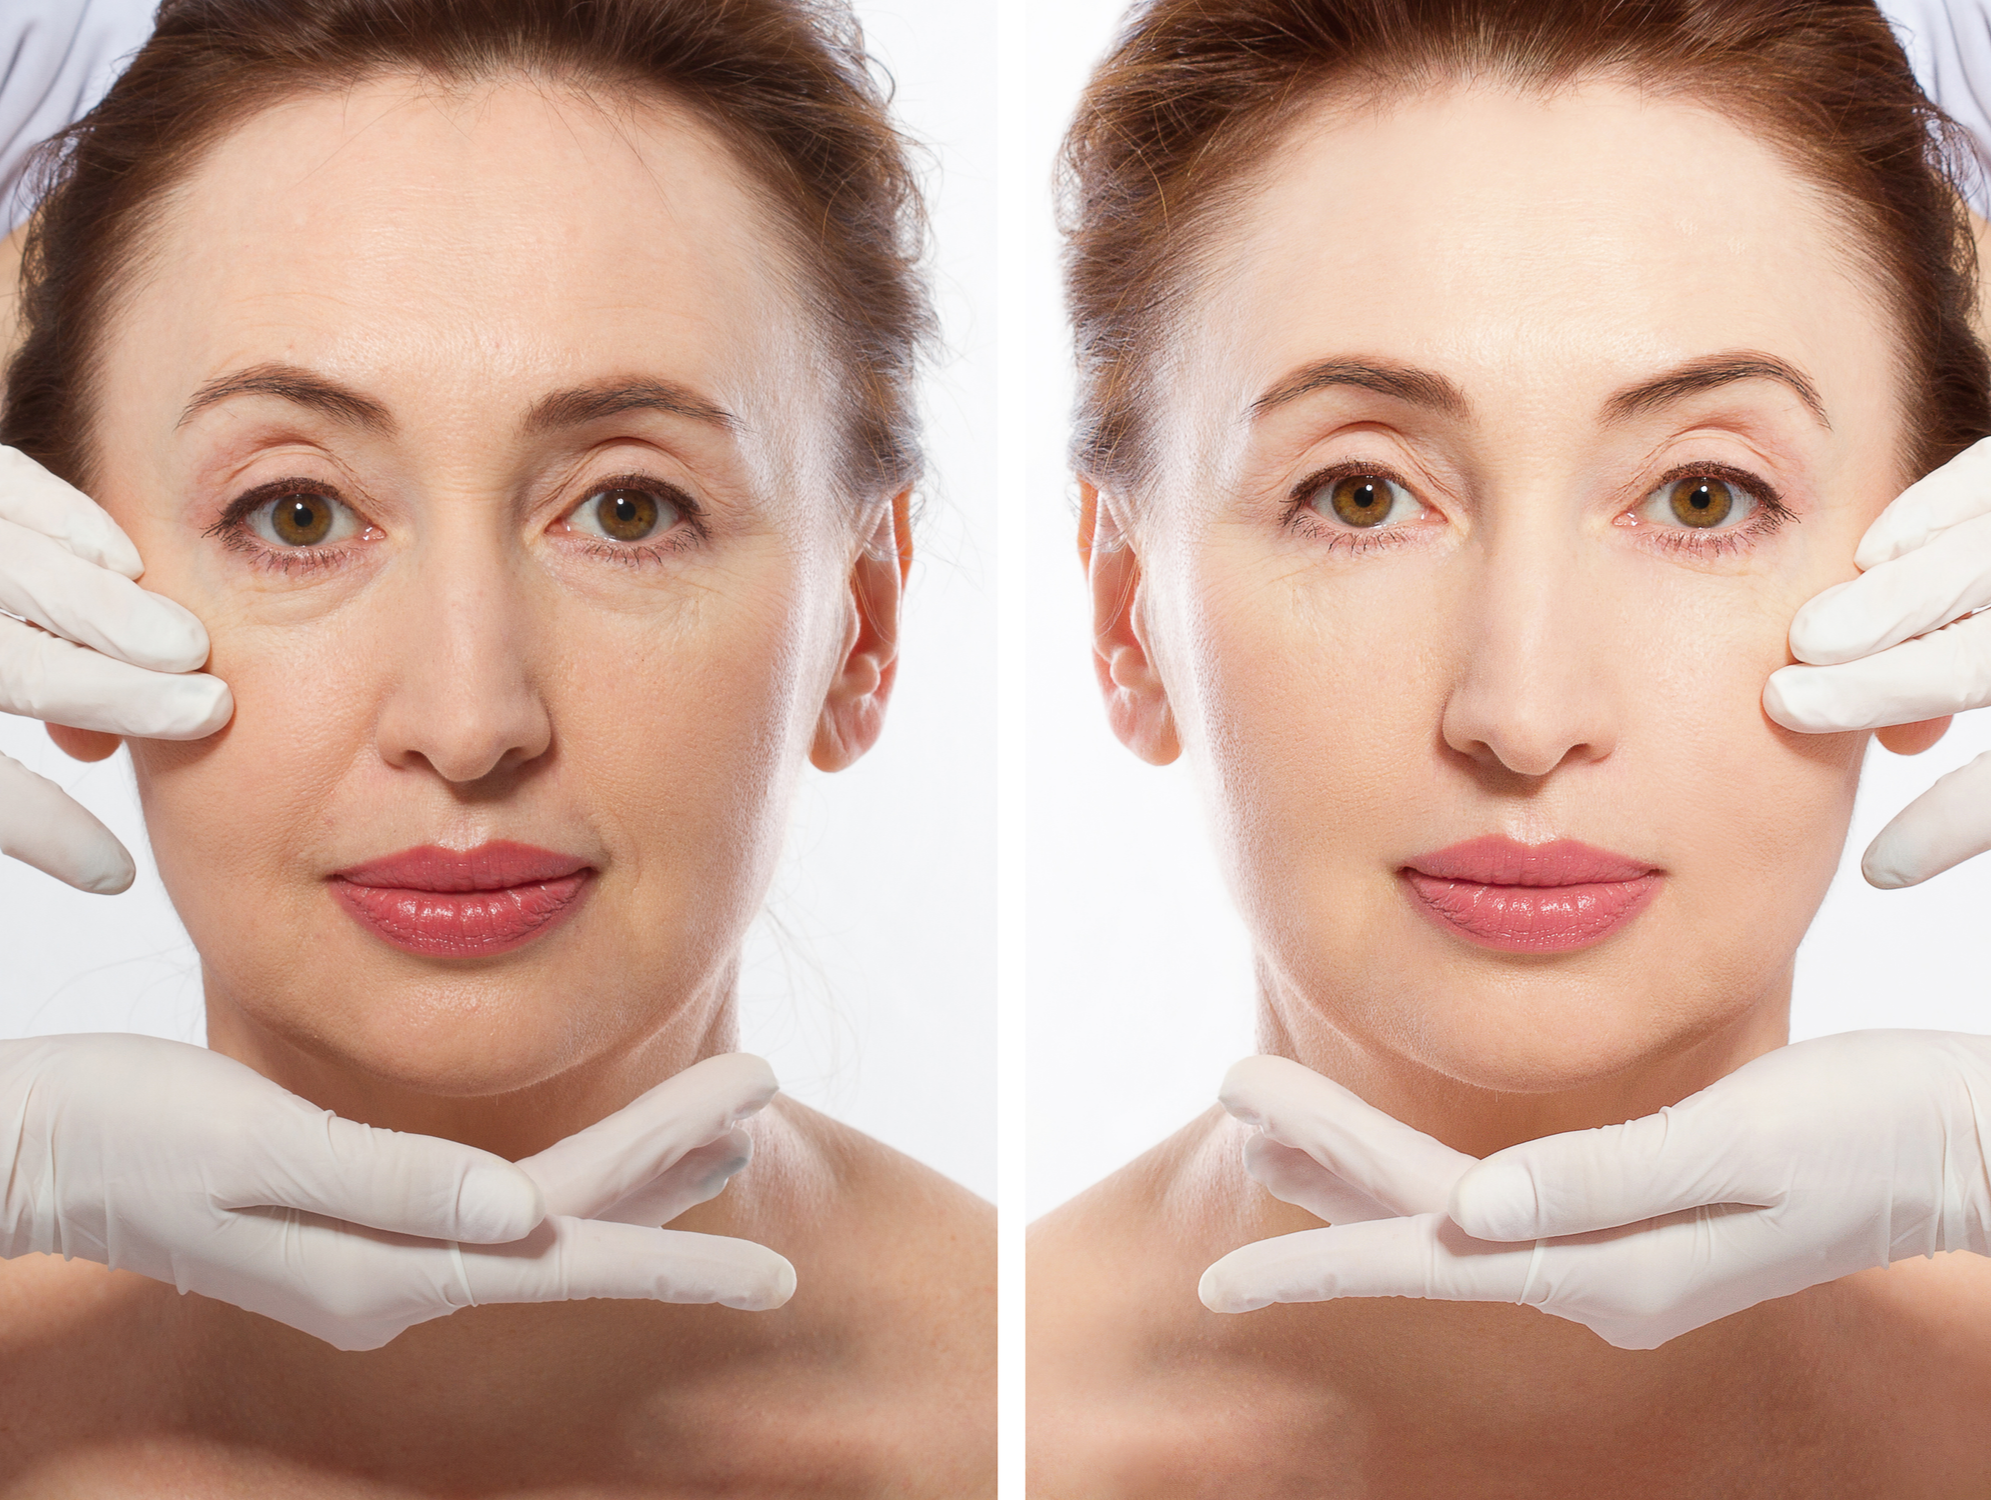 Getting a Youthful Facial Appearance With a Facelift